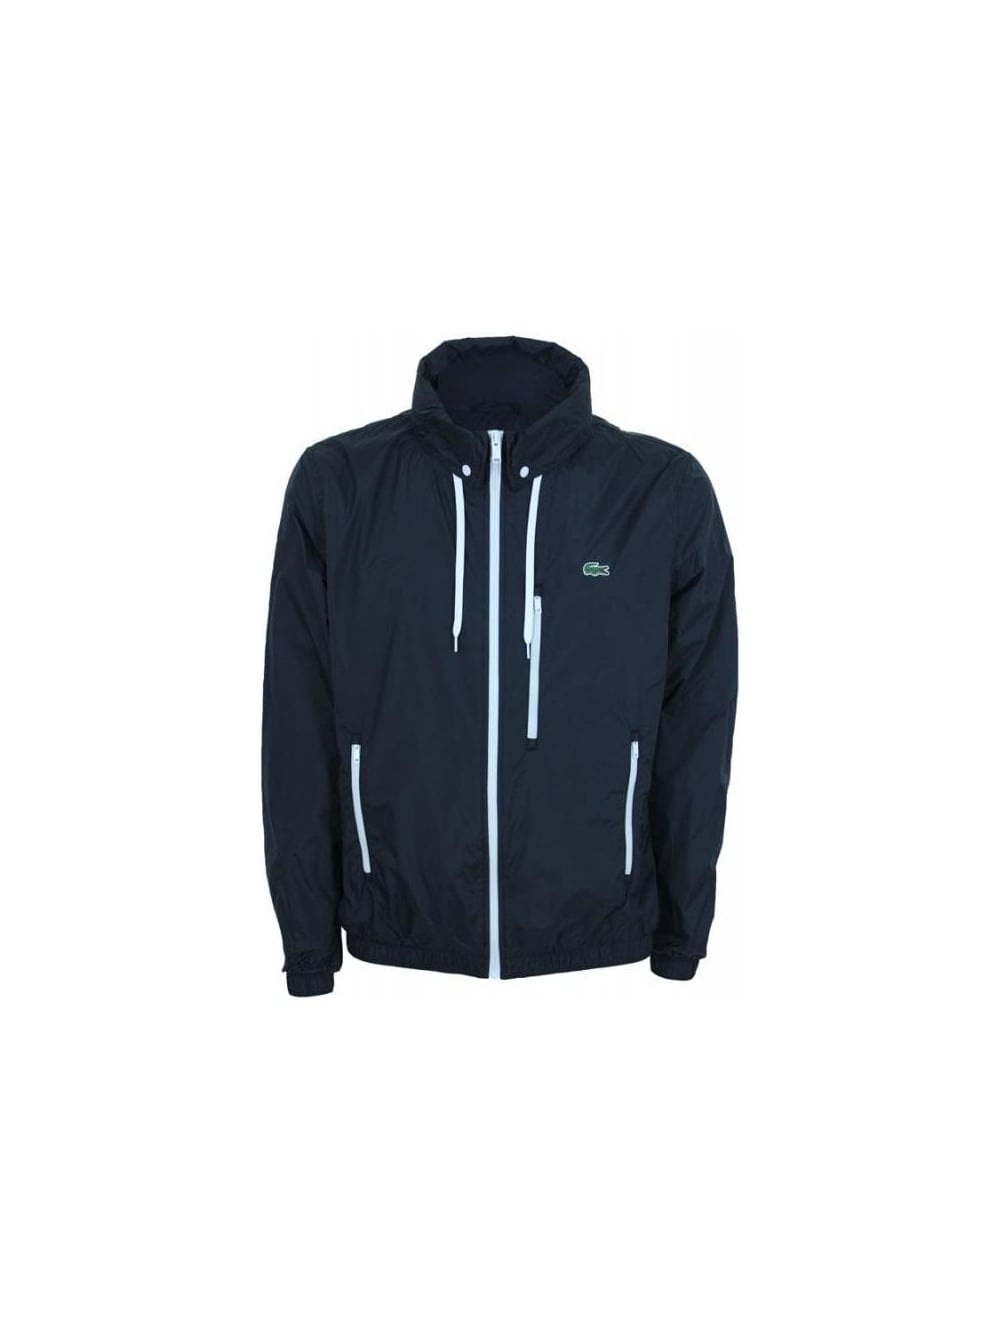 46ae0e27060e Lacoste Hooded Jacket in Black - Northern Threads